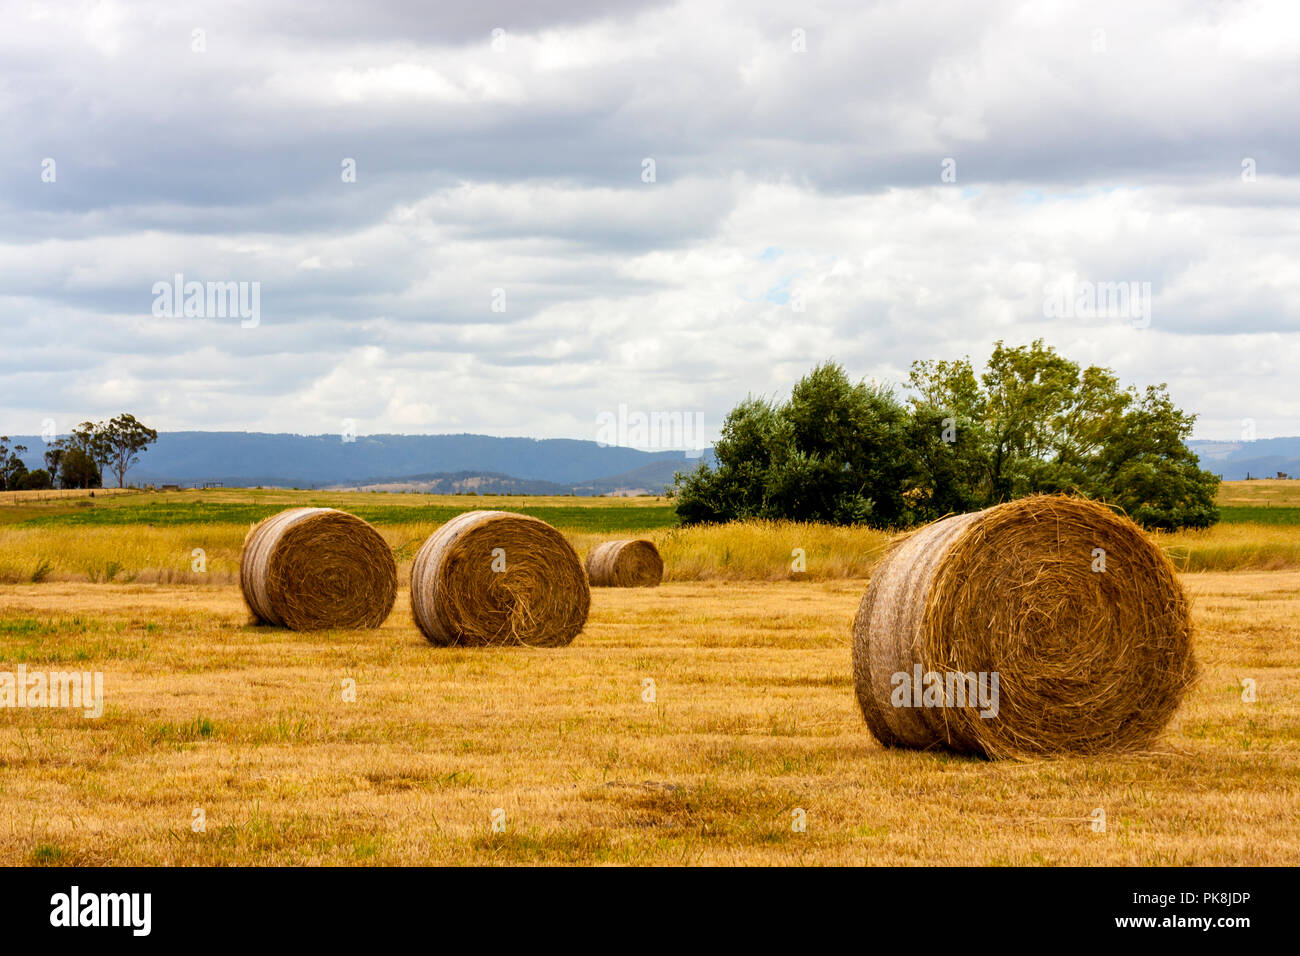 Ripe haystacks of wheat, field in the South Australia. - Stock Image